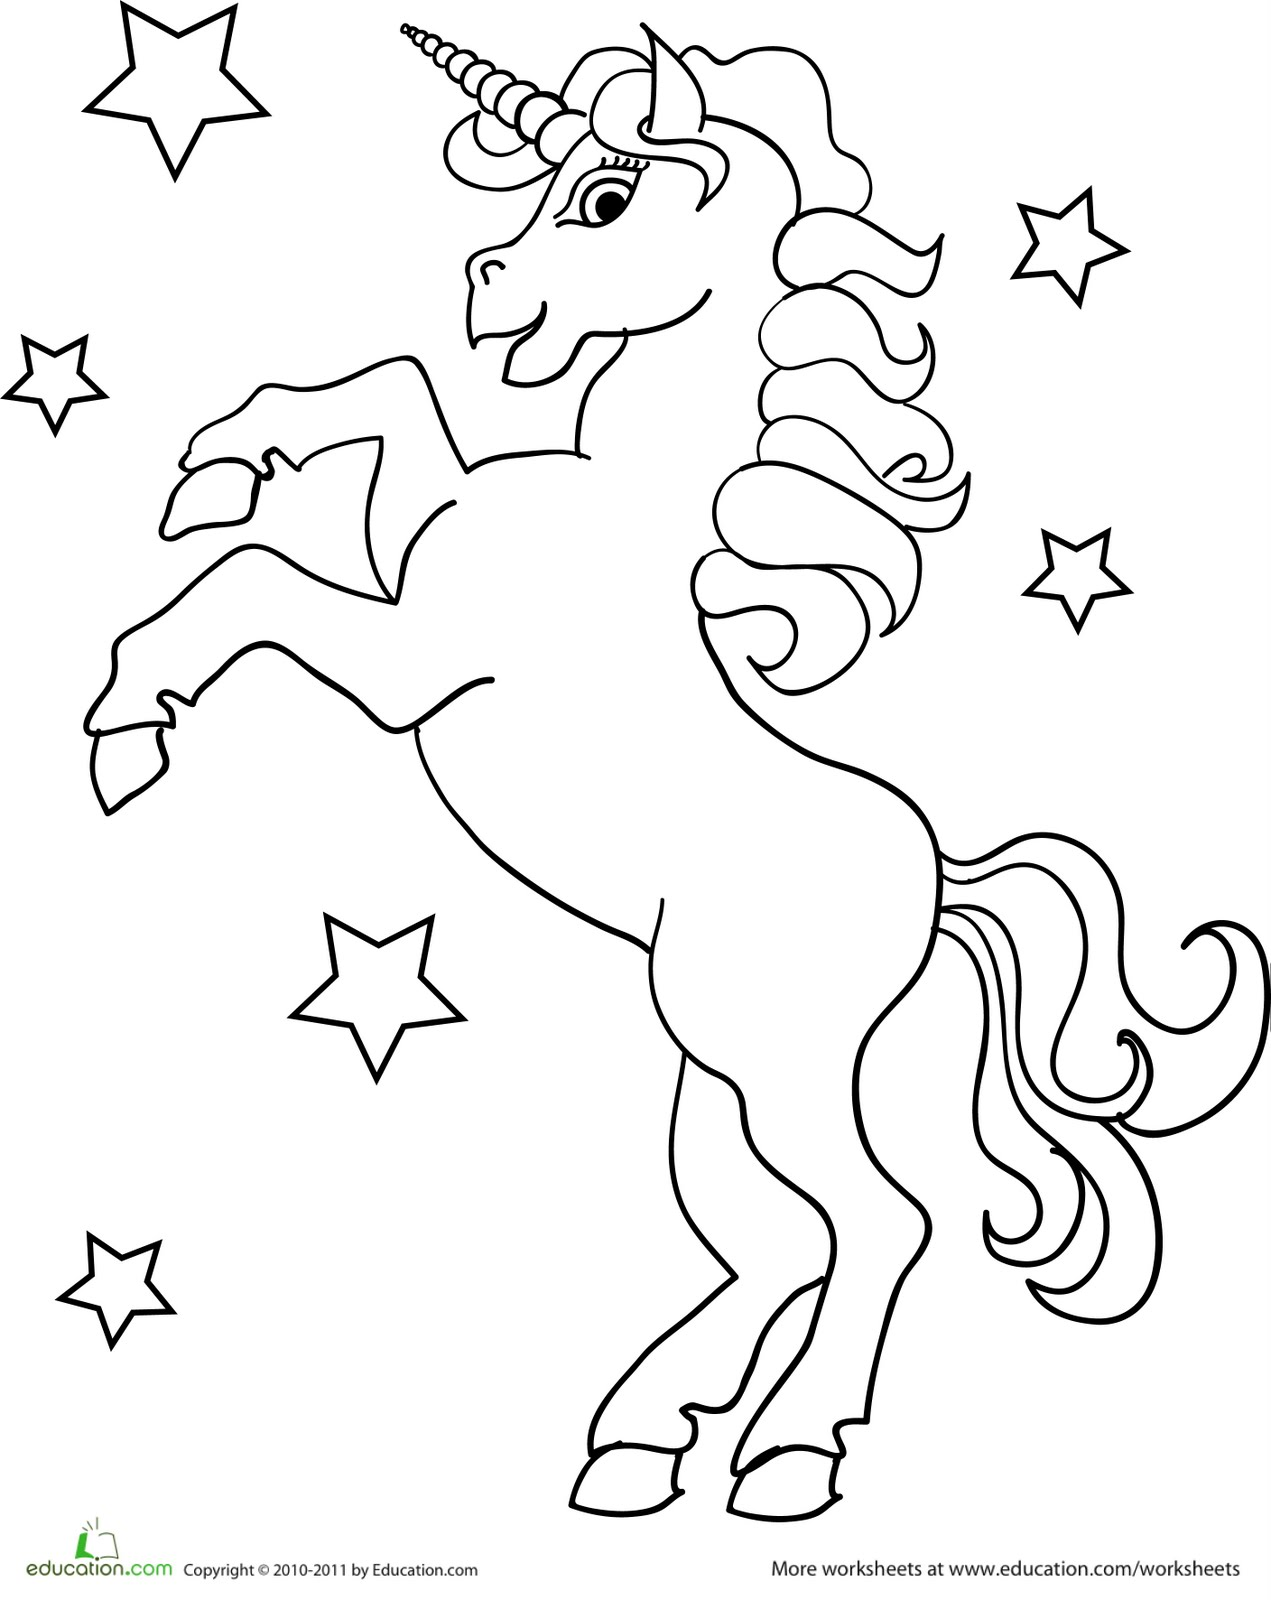 unicorn printable coloring pages - photo#4